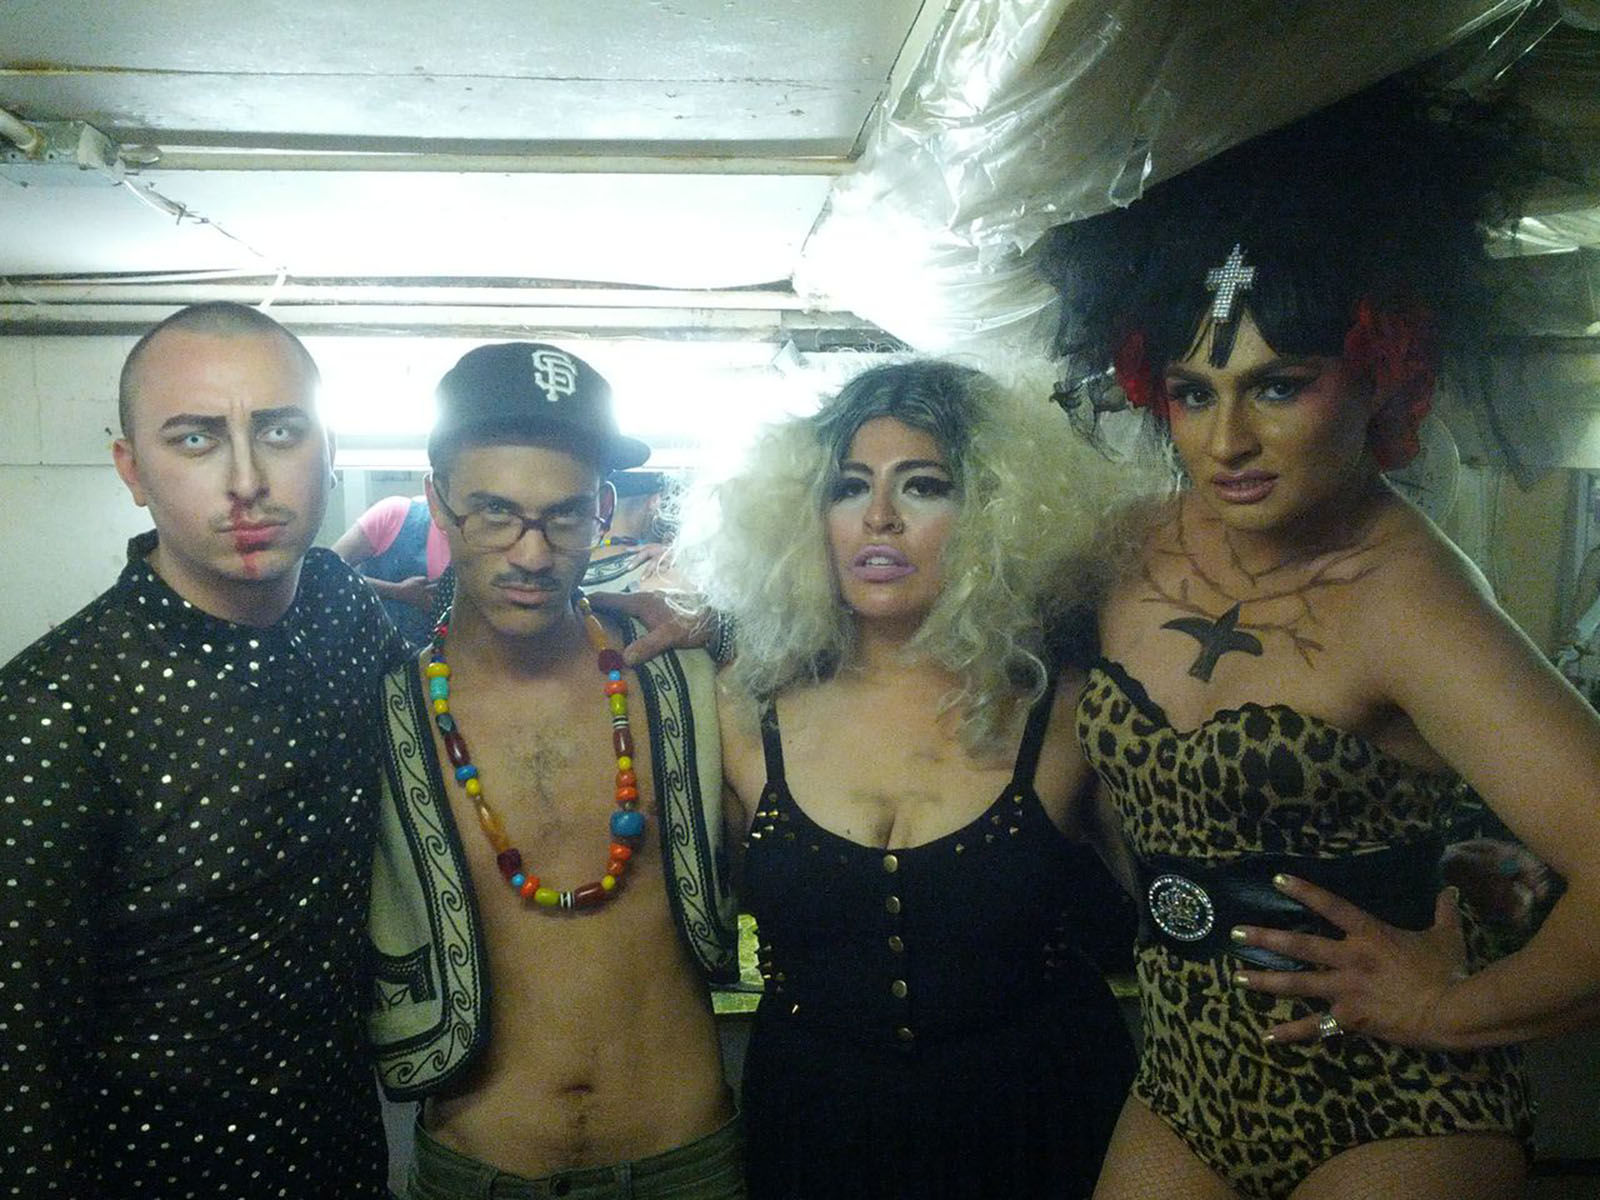 In the dressing room at Esta Noche: (left to right) Vain Hein, Tyler Holmes, San Cha of performance art group Daddies Plastik; and Persia at a fundraiser at Esta Noche in 2013. Photo by Daniel Hirsch.